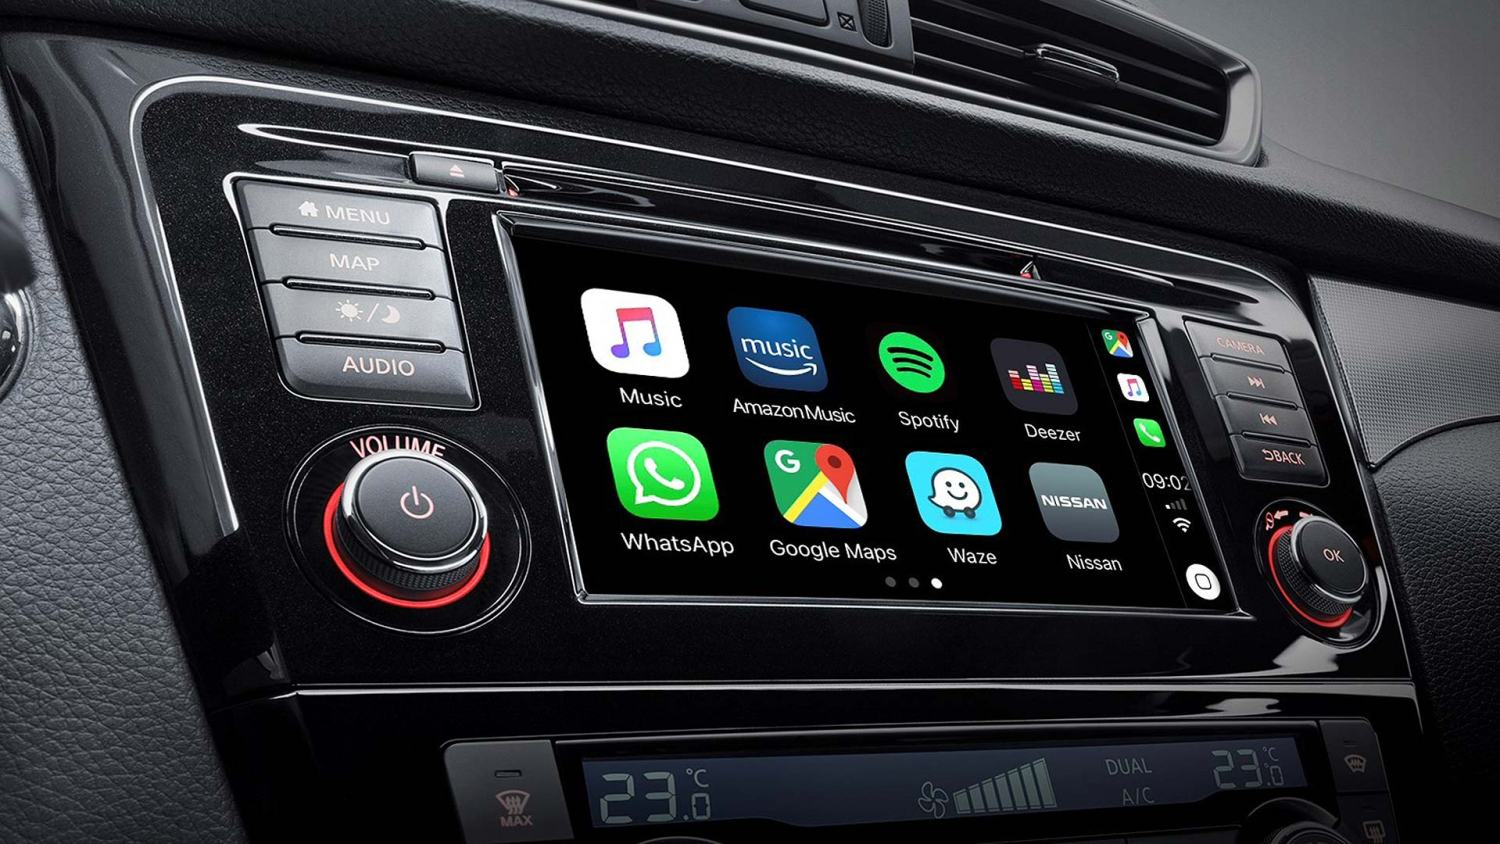 2019 Nissan Qashqai gets Apple CarPlay and Android Auto at